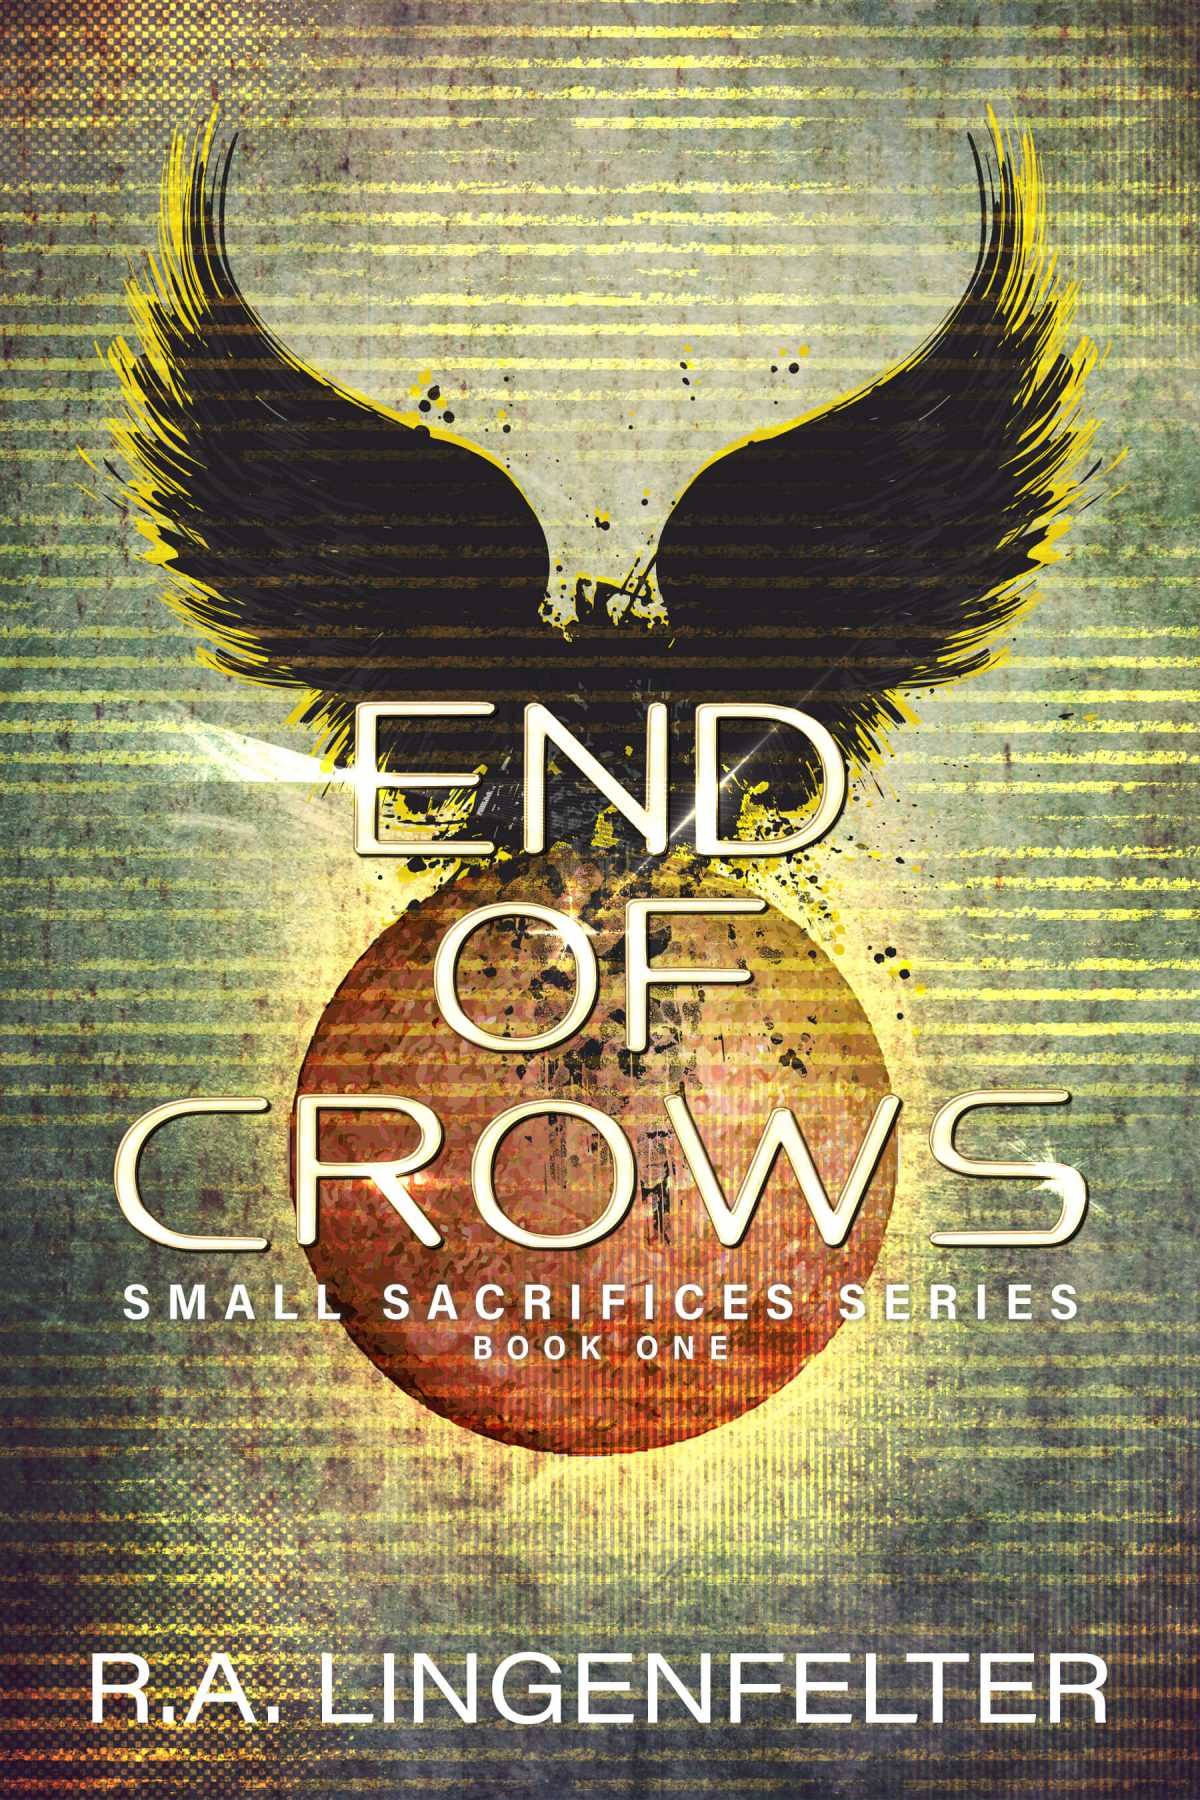 End of Crows – Small Sacrifices Series